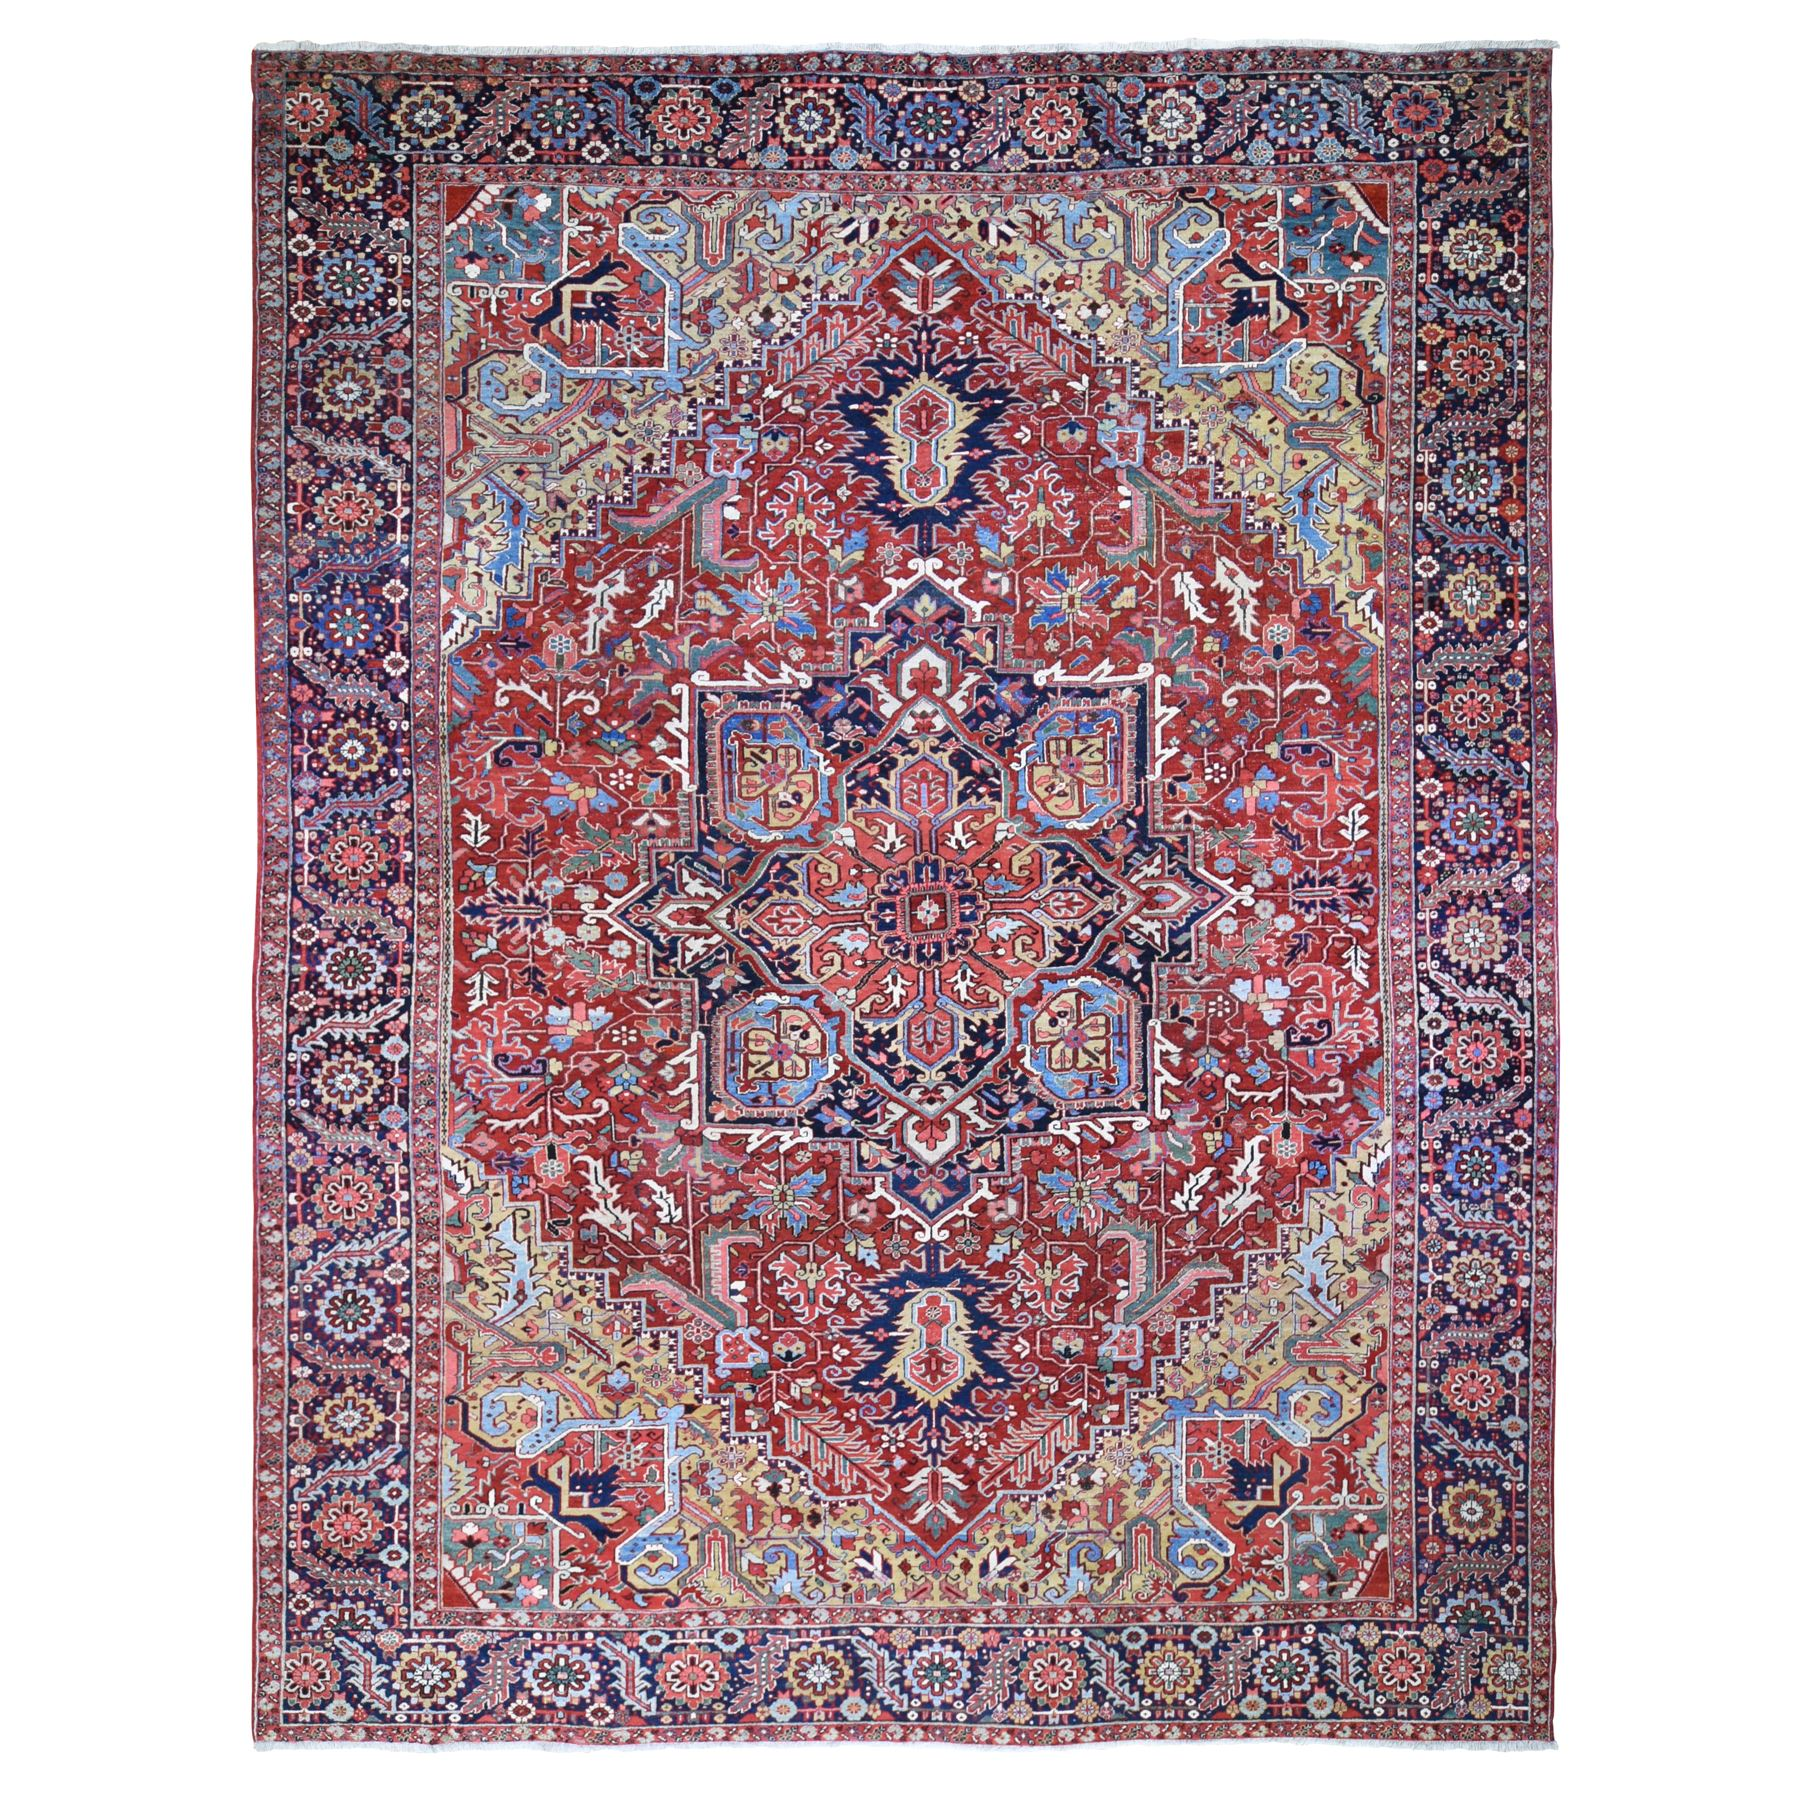 "12'X15'6"" Oversized Red Antique Persian Heriz Evern Wear Clean Camel Hair Corners Hand Knotted Oriental Rug moae9bc8"